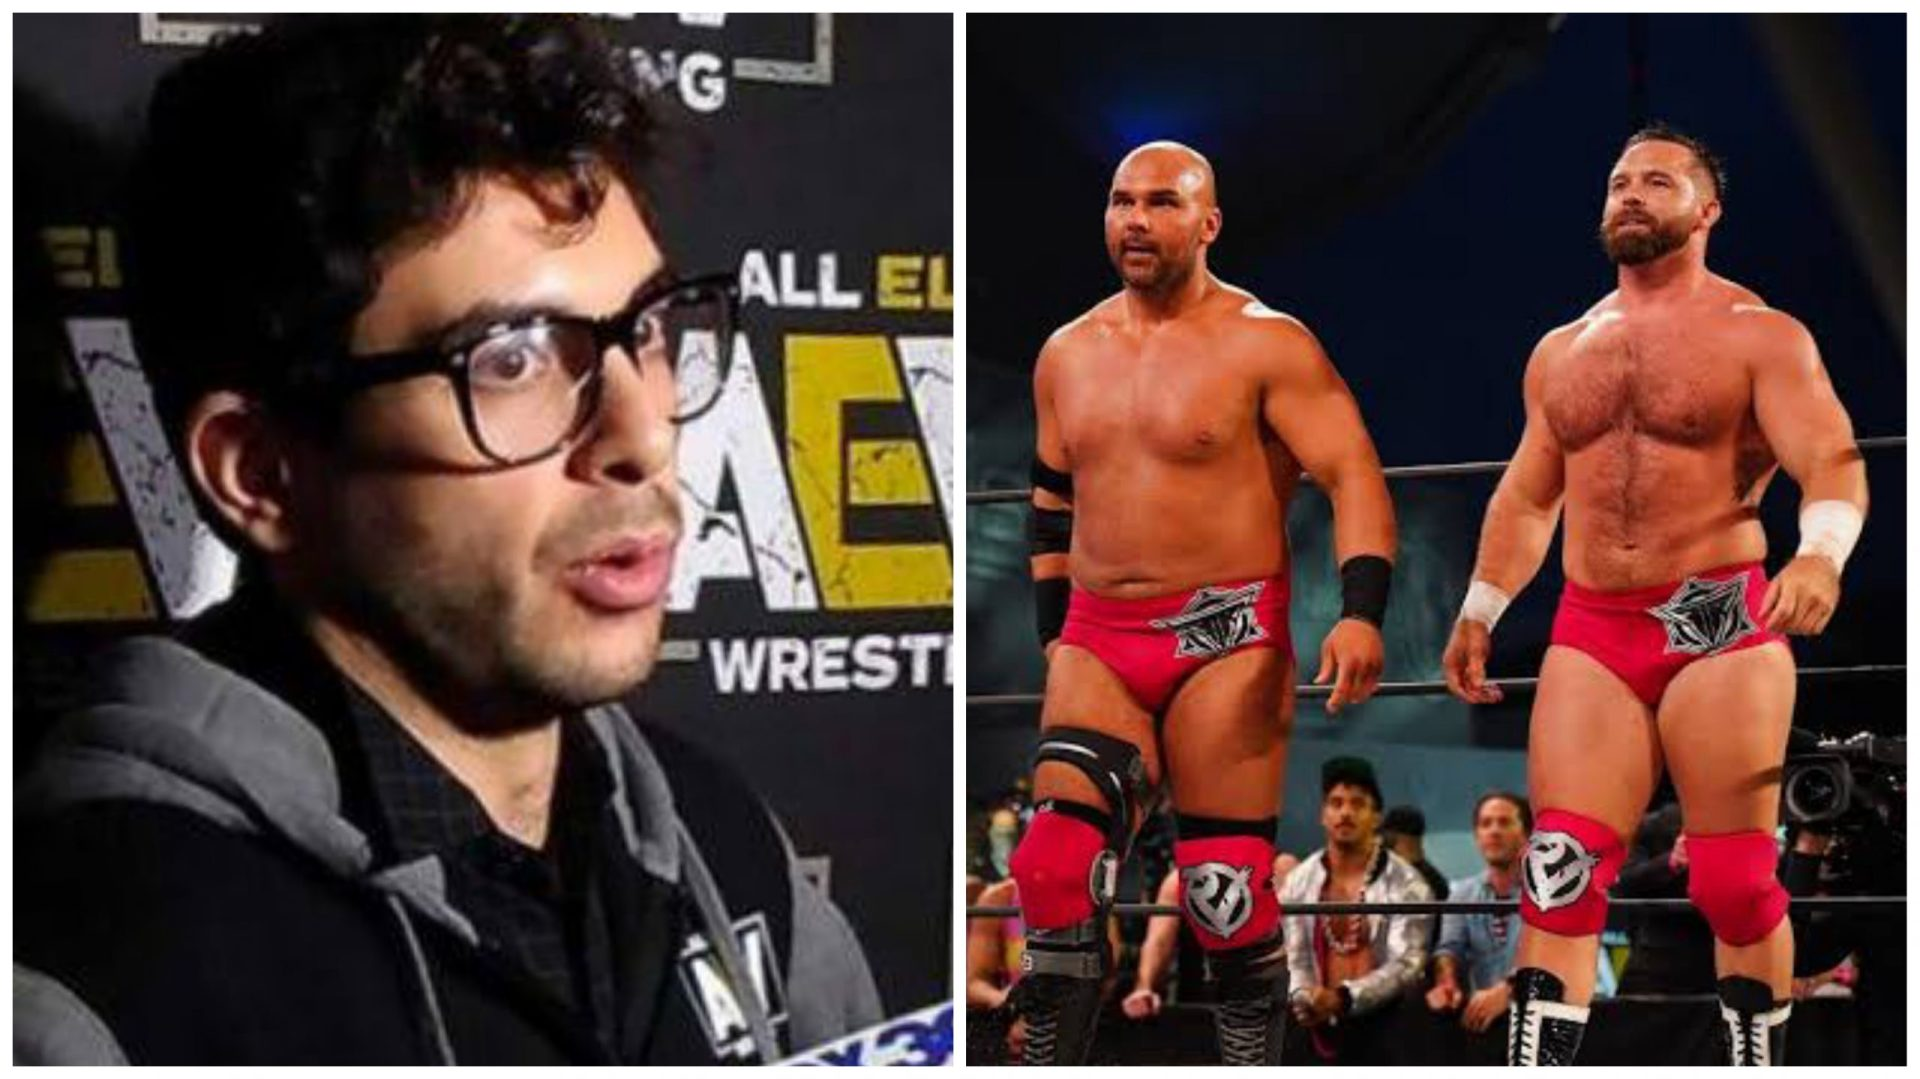 FTR suspended for 1 week by AEW - THE SPORTS ROOM